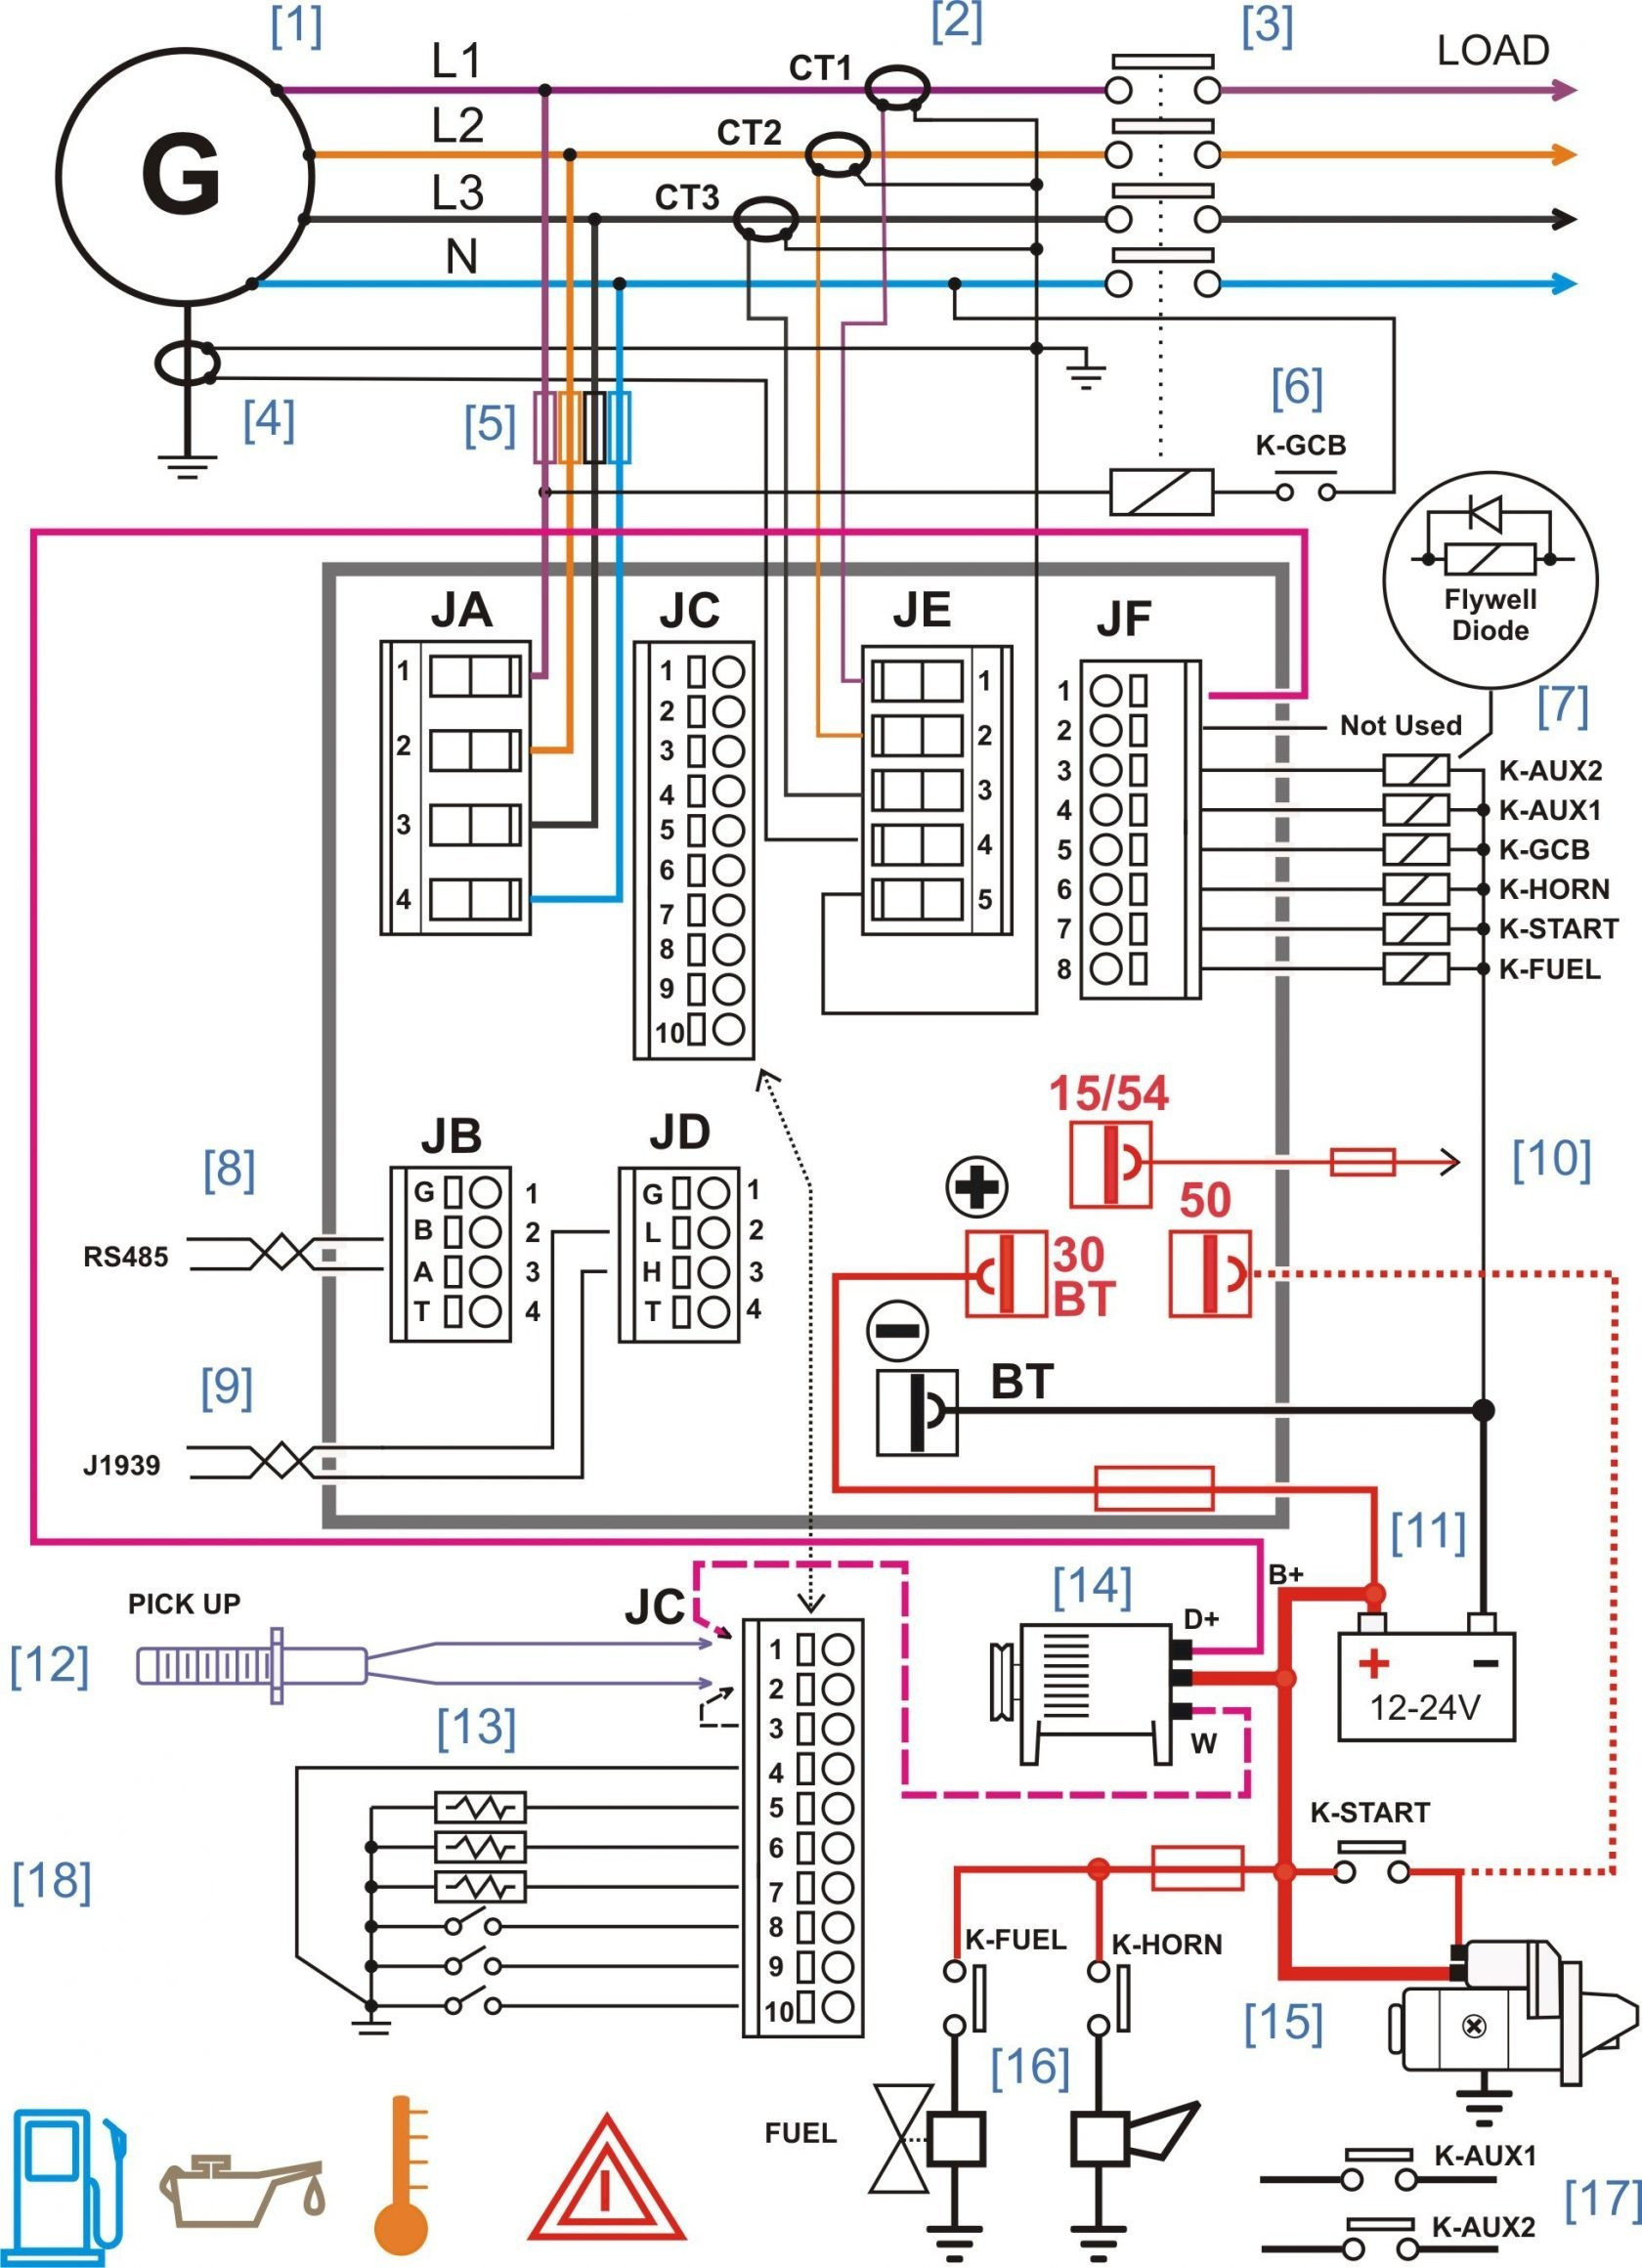 blaupunkt car audio wiring diagram download. Black Bedroom Furniture Sets. Home Design Ideas